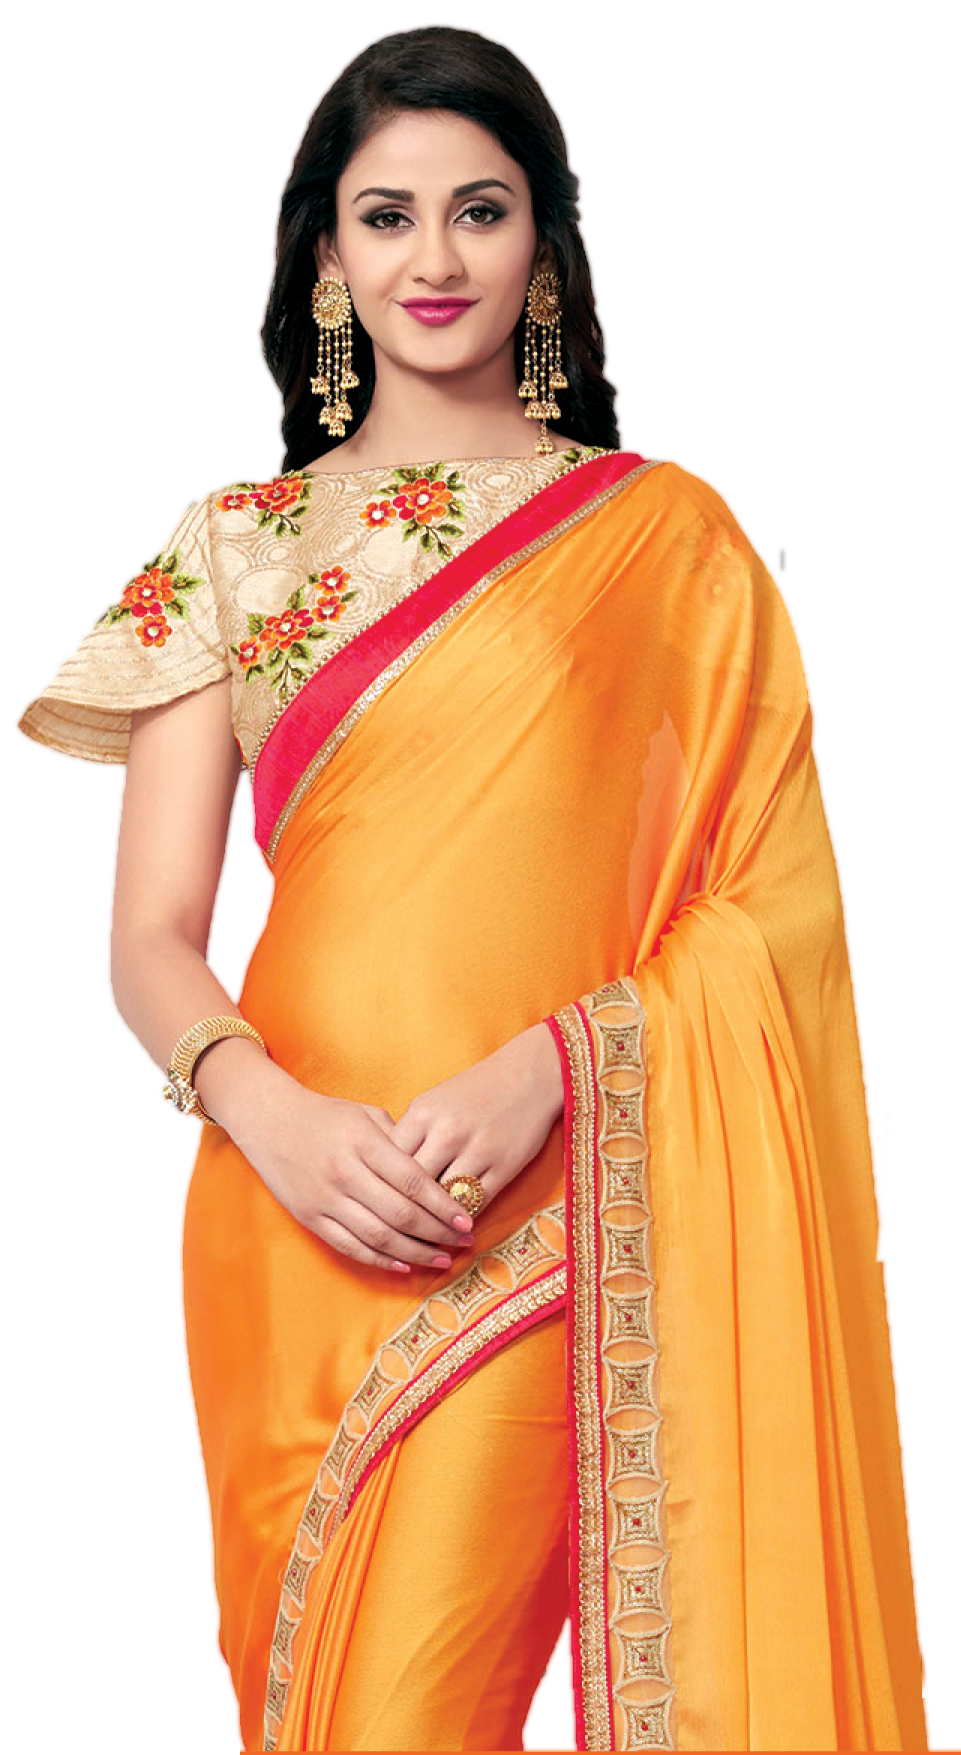 banner black and white Beautiful Model in saree PNG Transparent image free